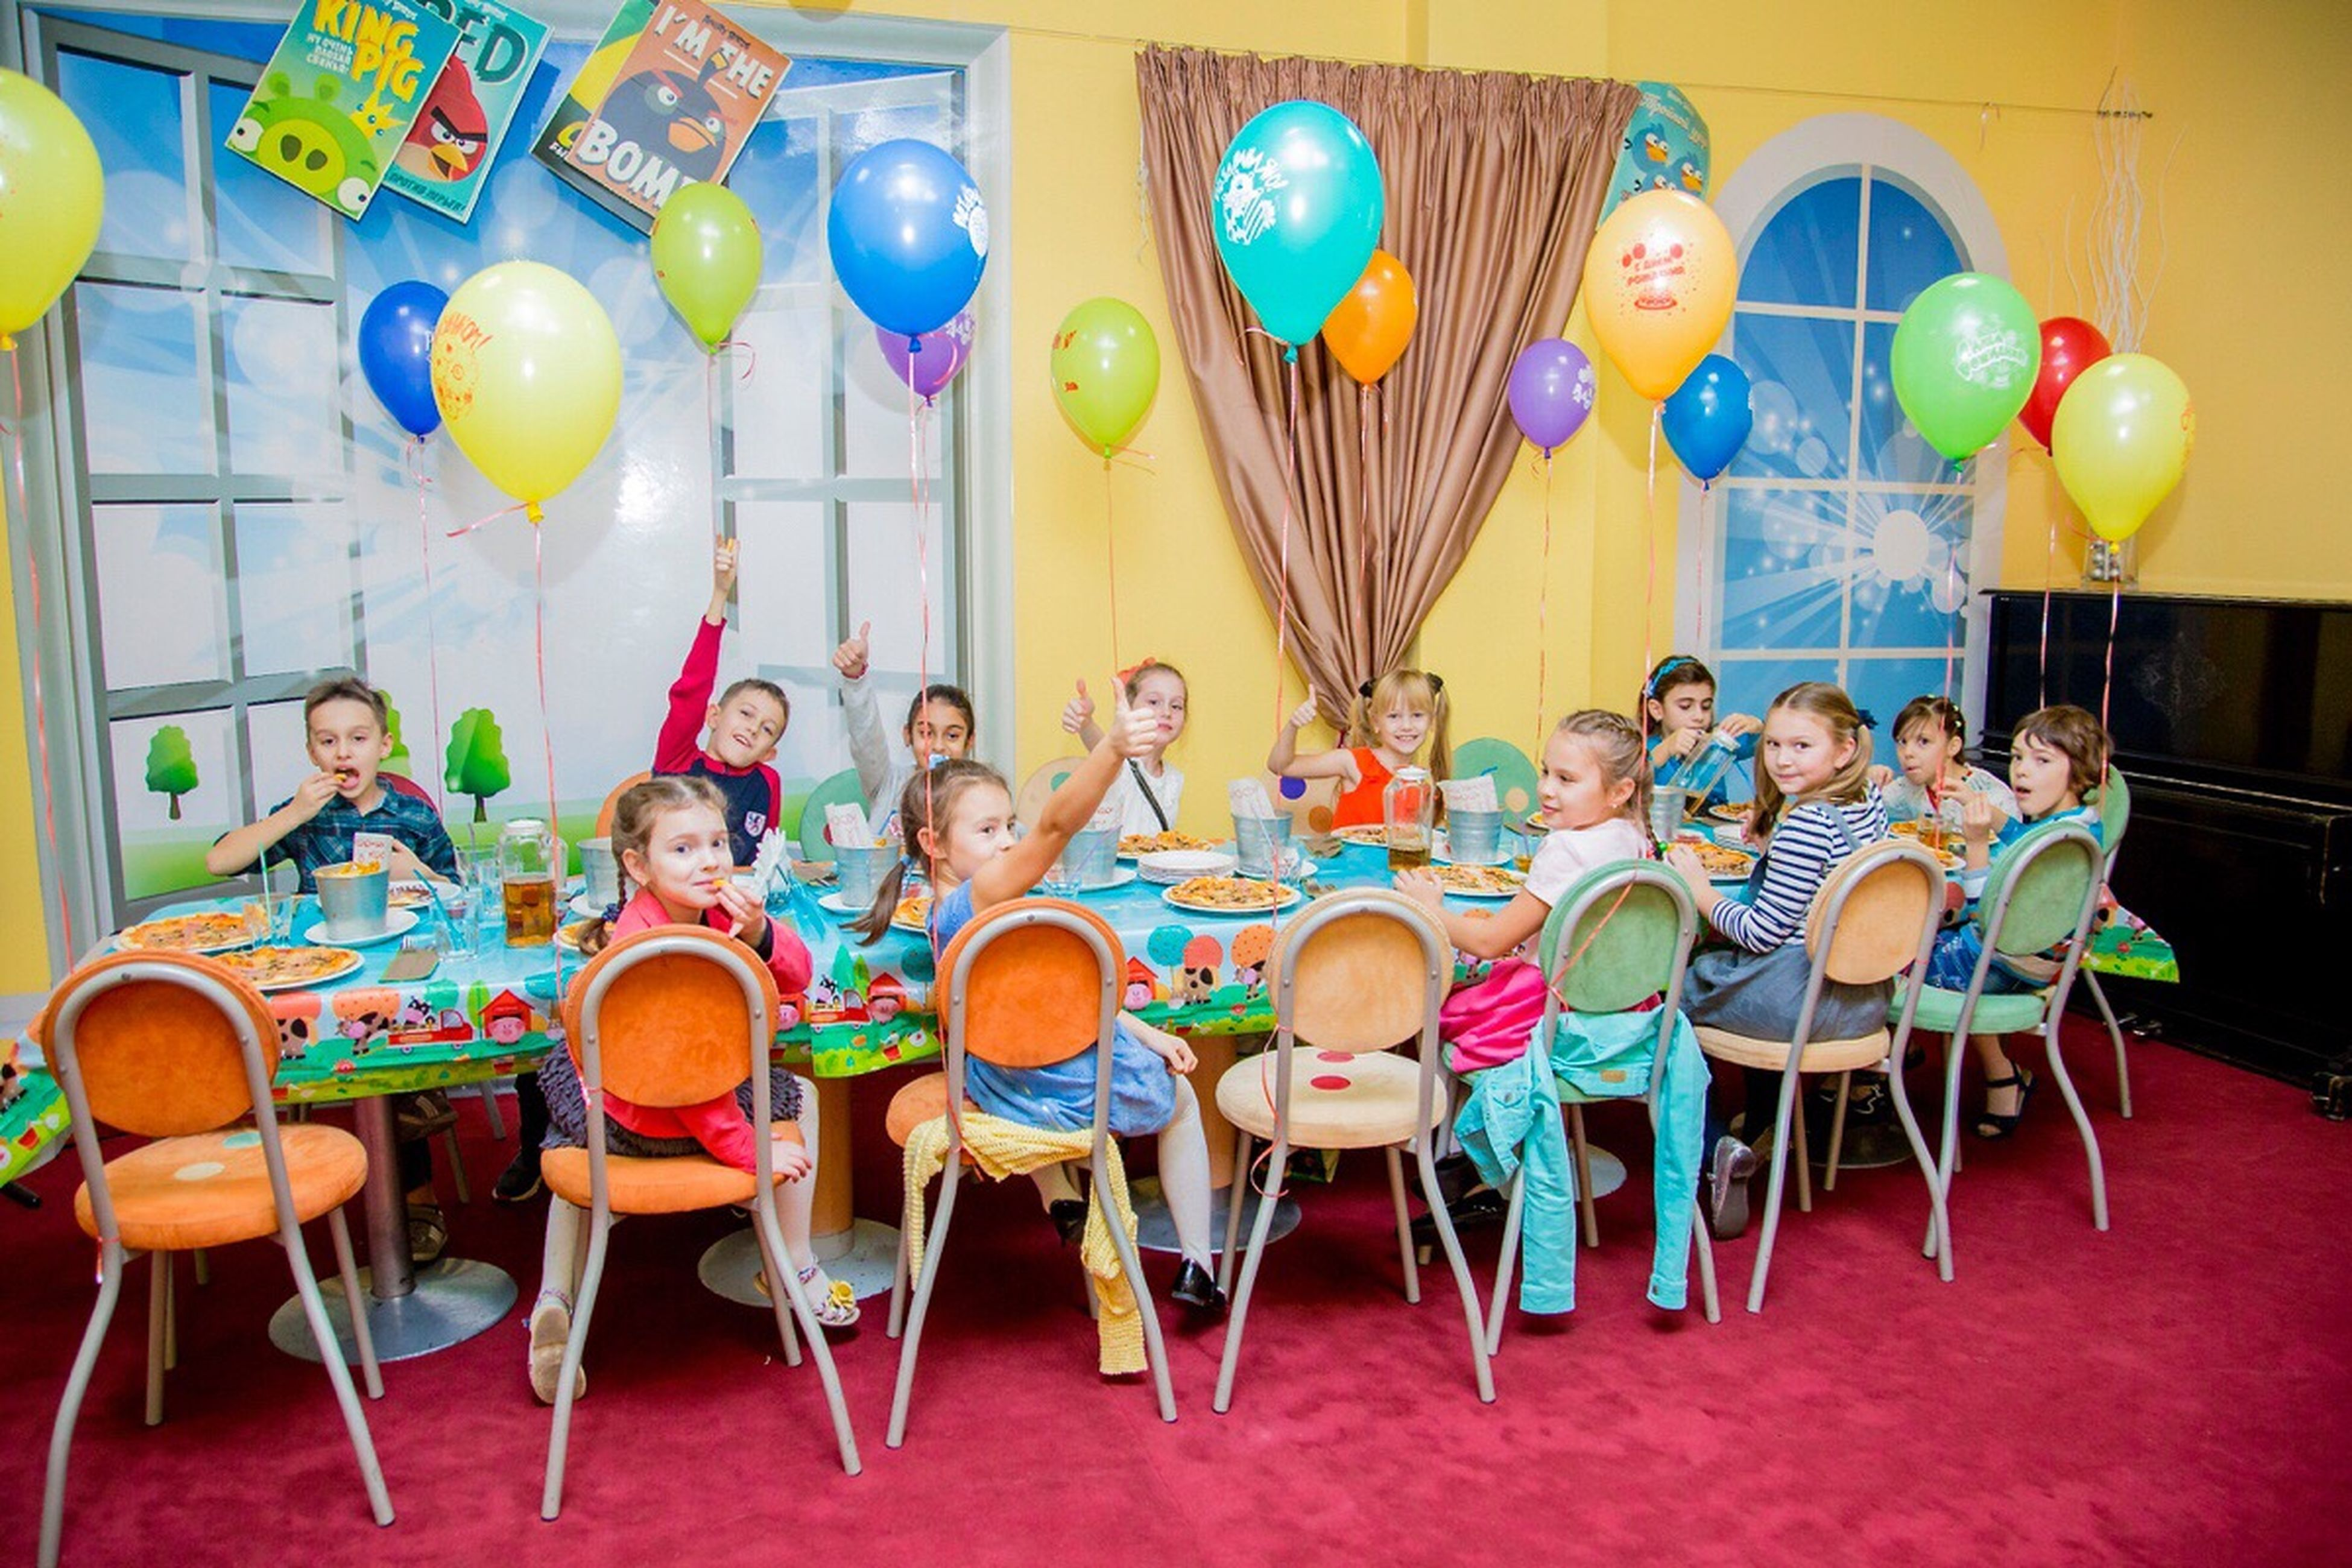 celebration, balloon, child, party - social event, sitting, togetherness, cheerful, smiling, people, full length, chair, large group of people, childhood, friendship, adult, indoors, young adult, day